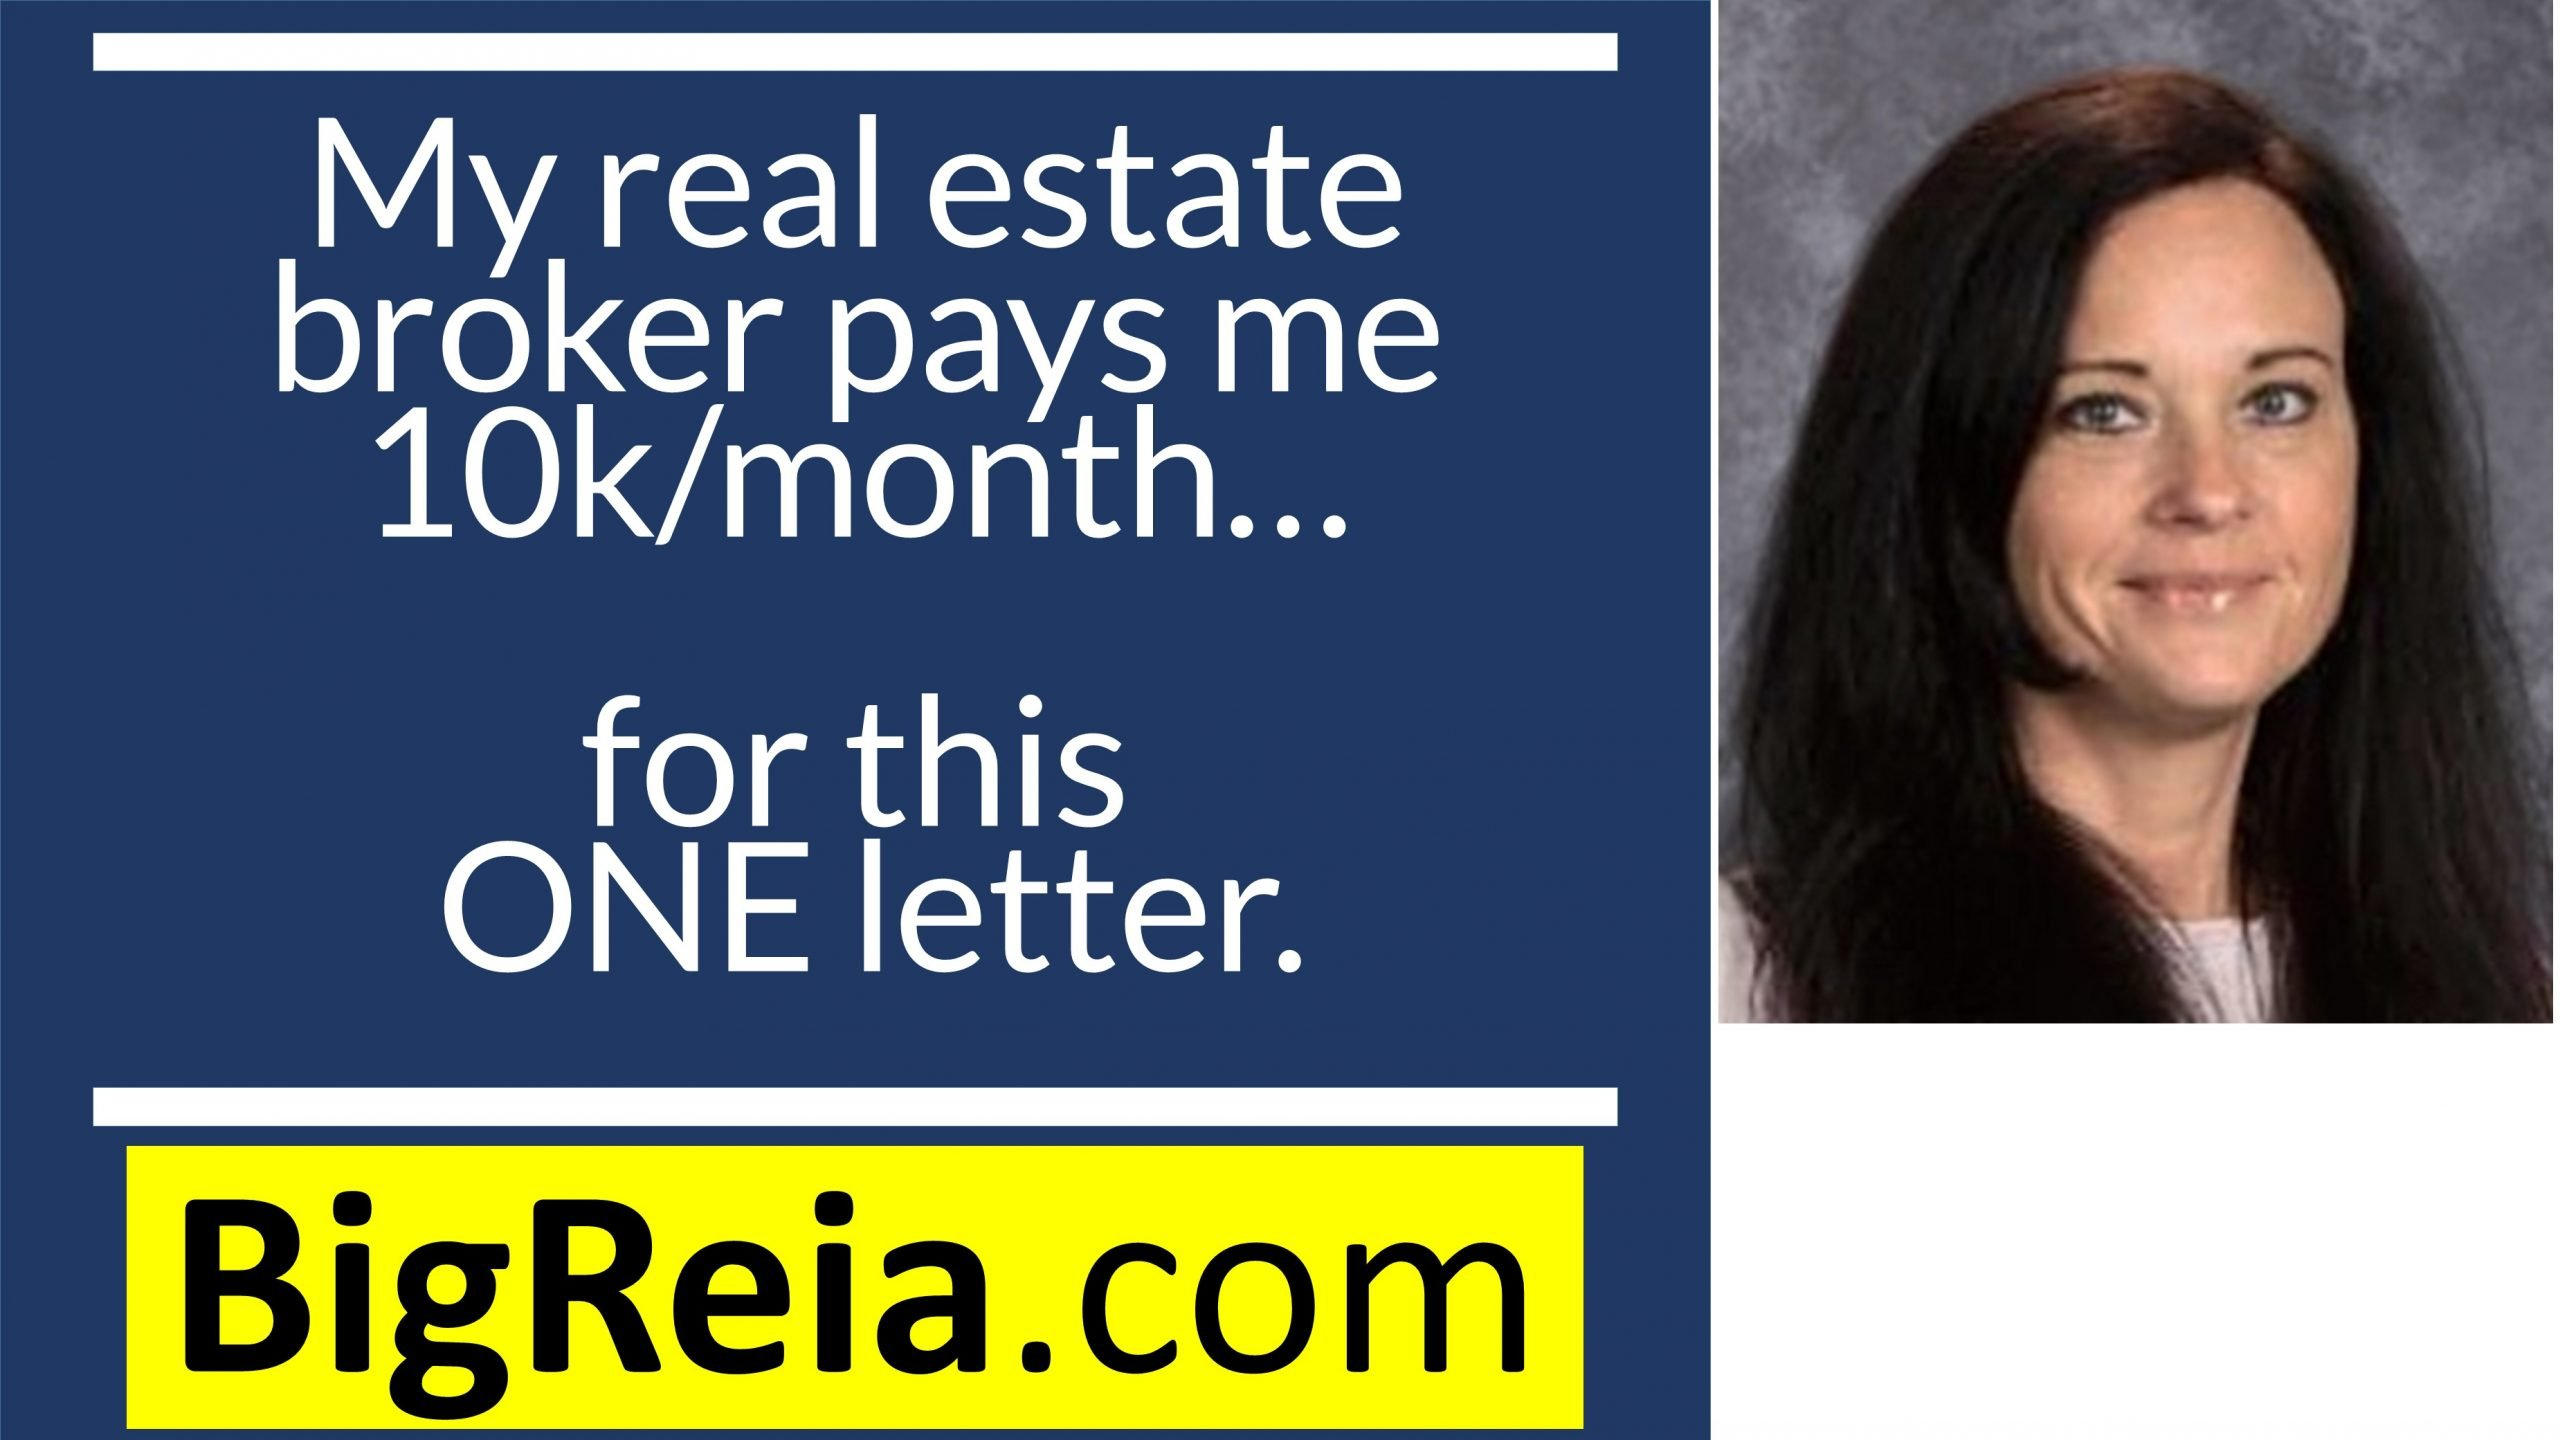 How I got my real estate broker to pay me 10k/month by renting them BACK their own letter.